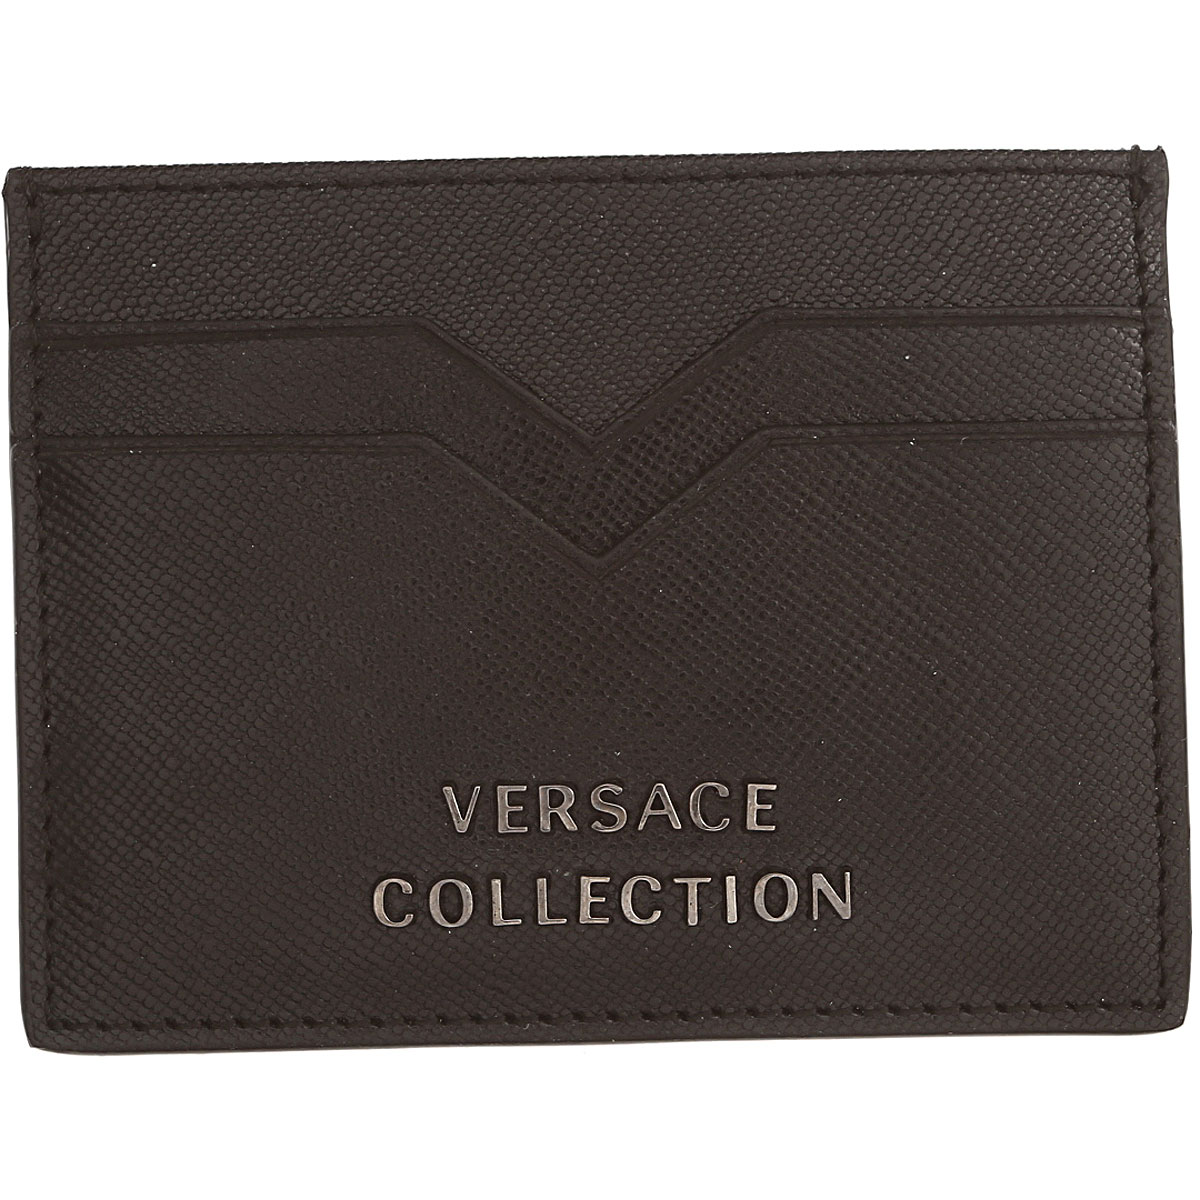 Image of Gianni Versace Card Holder for Men, Black, Leather, 2017